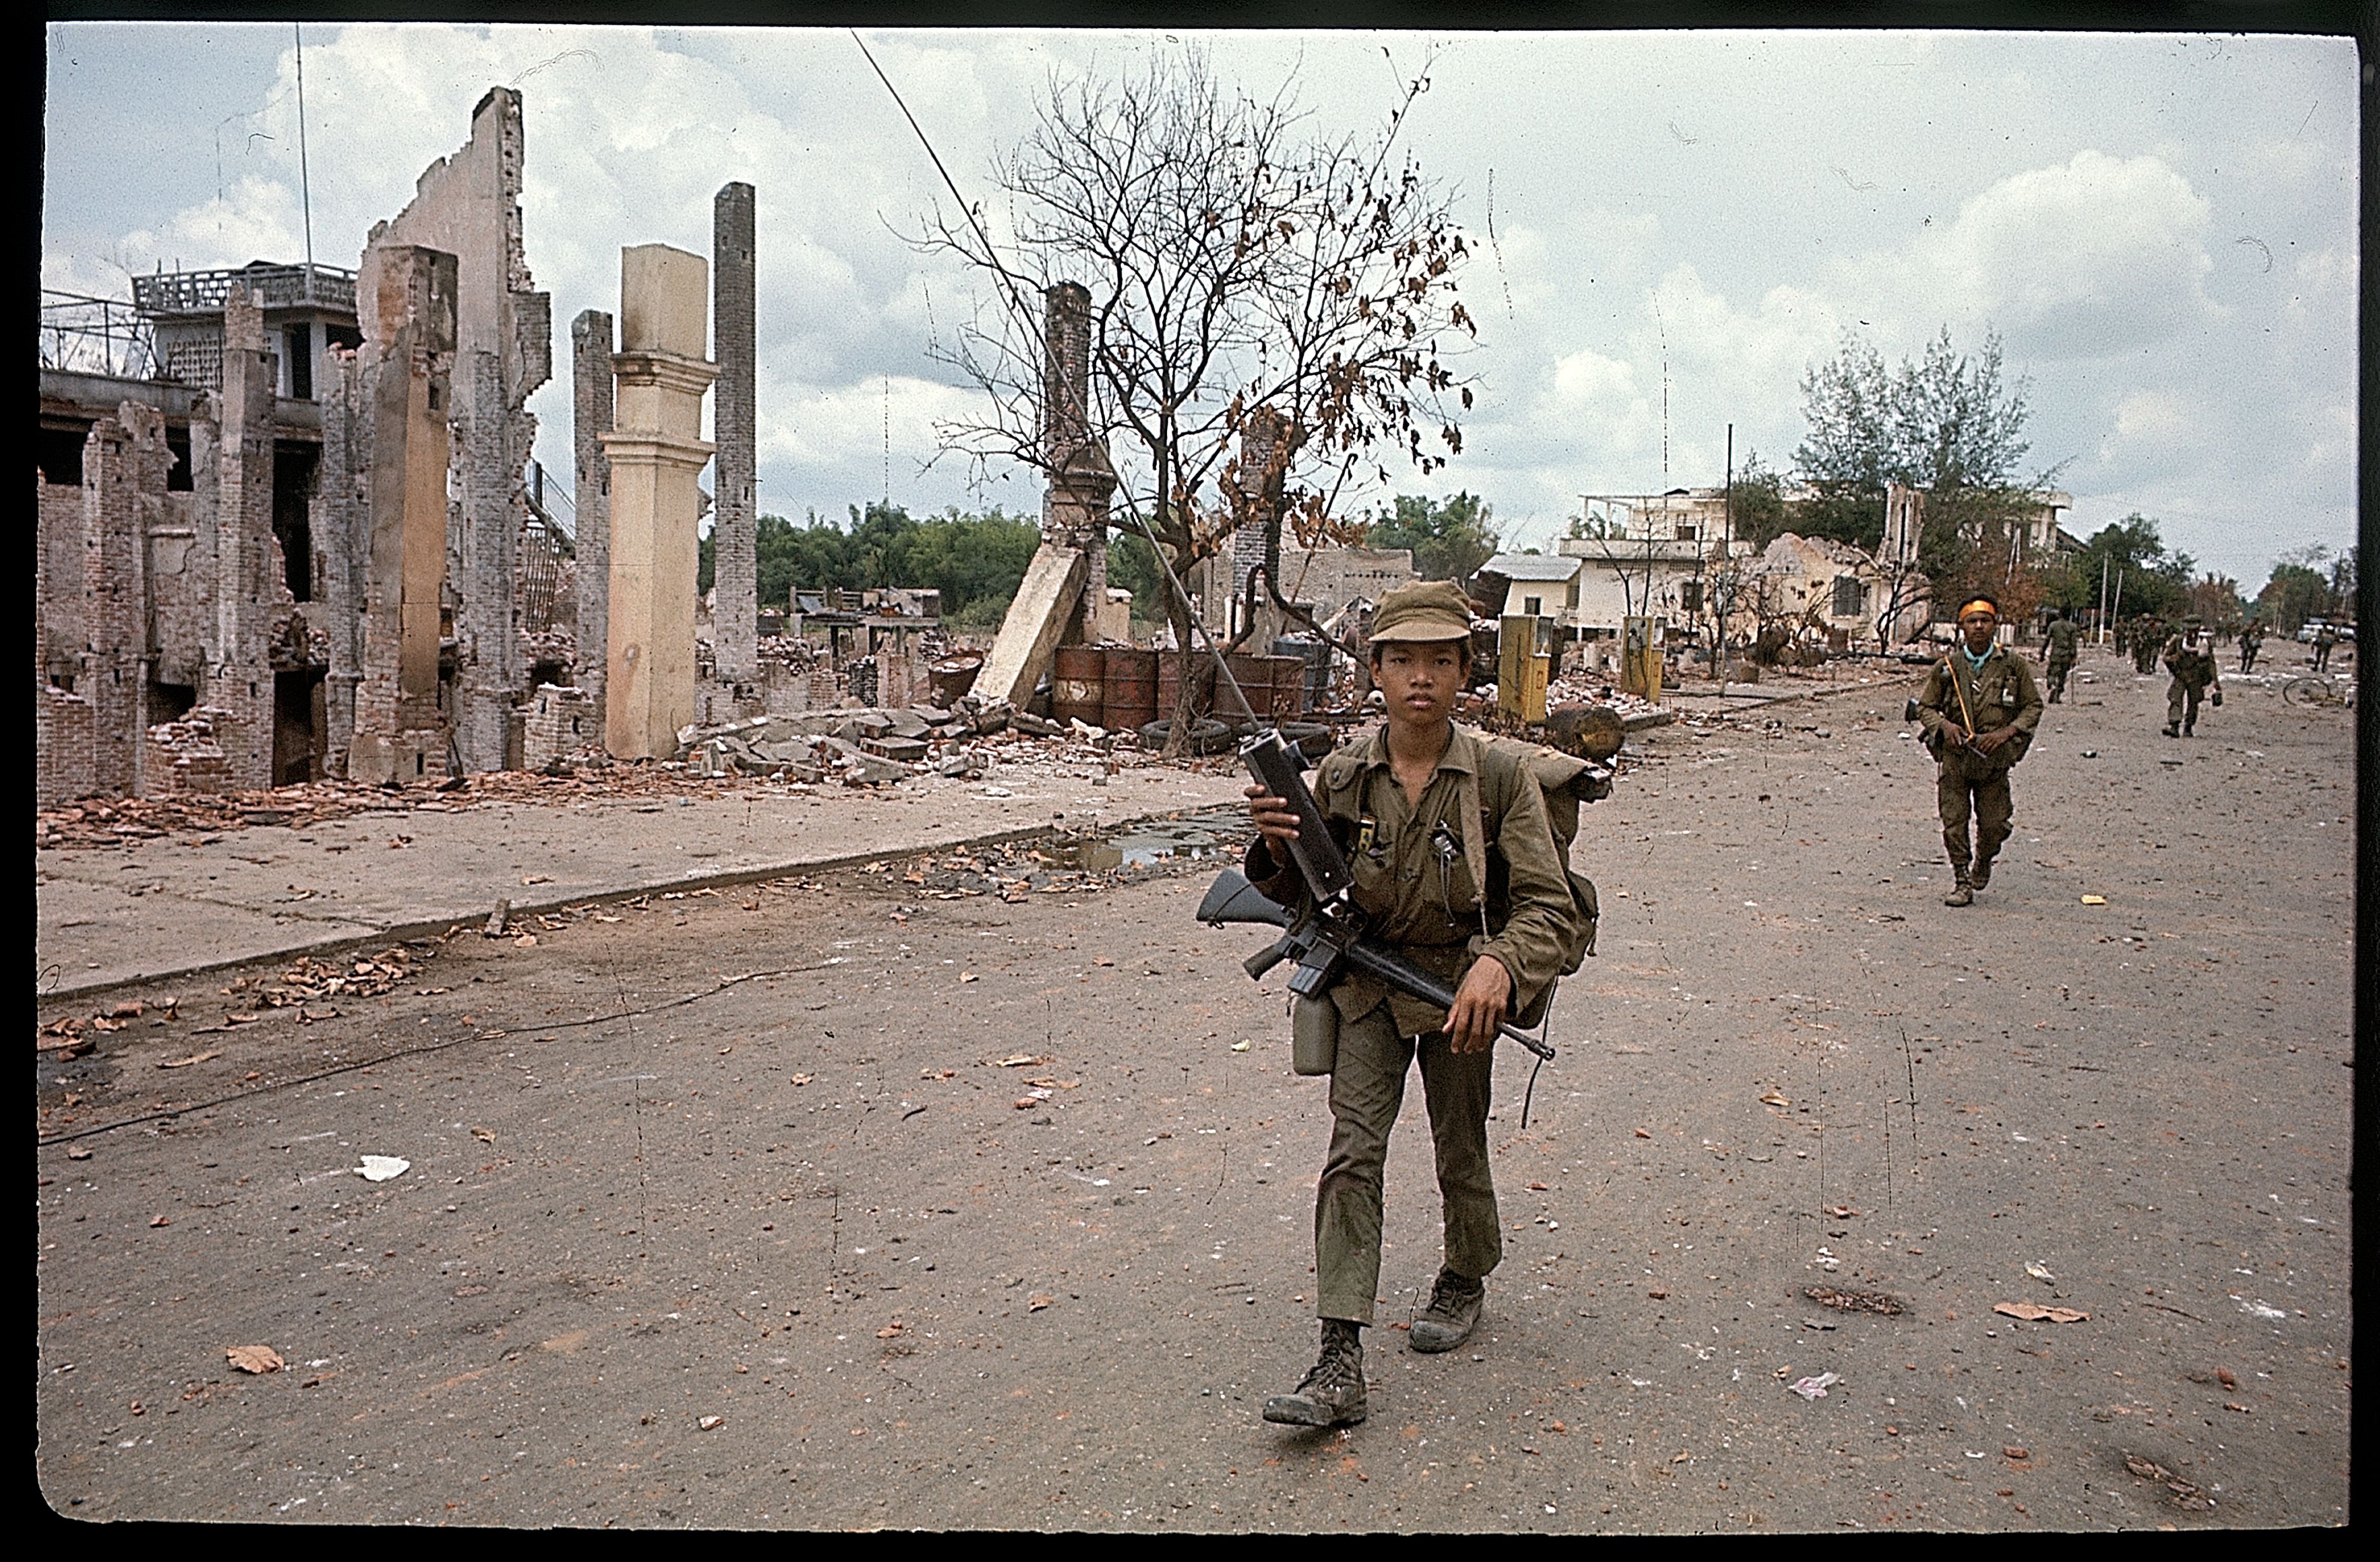 Refugees flee the Tan Son Nhut area after a Viet Cong attack on May 6, 1968.